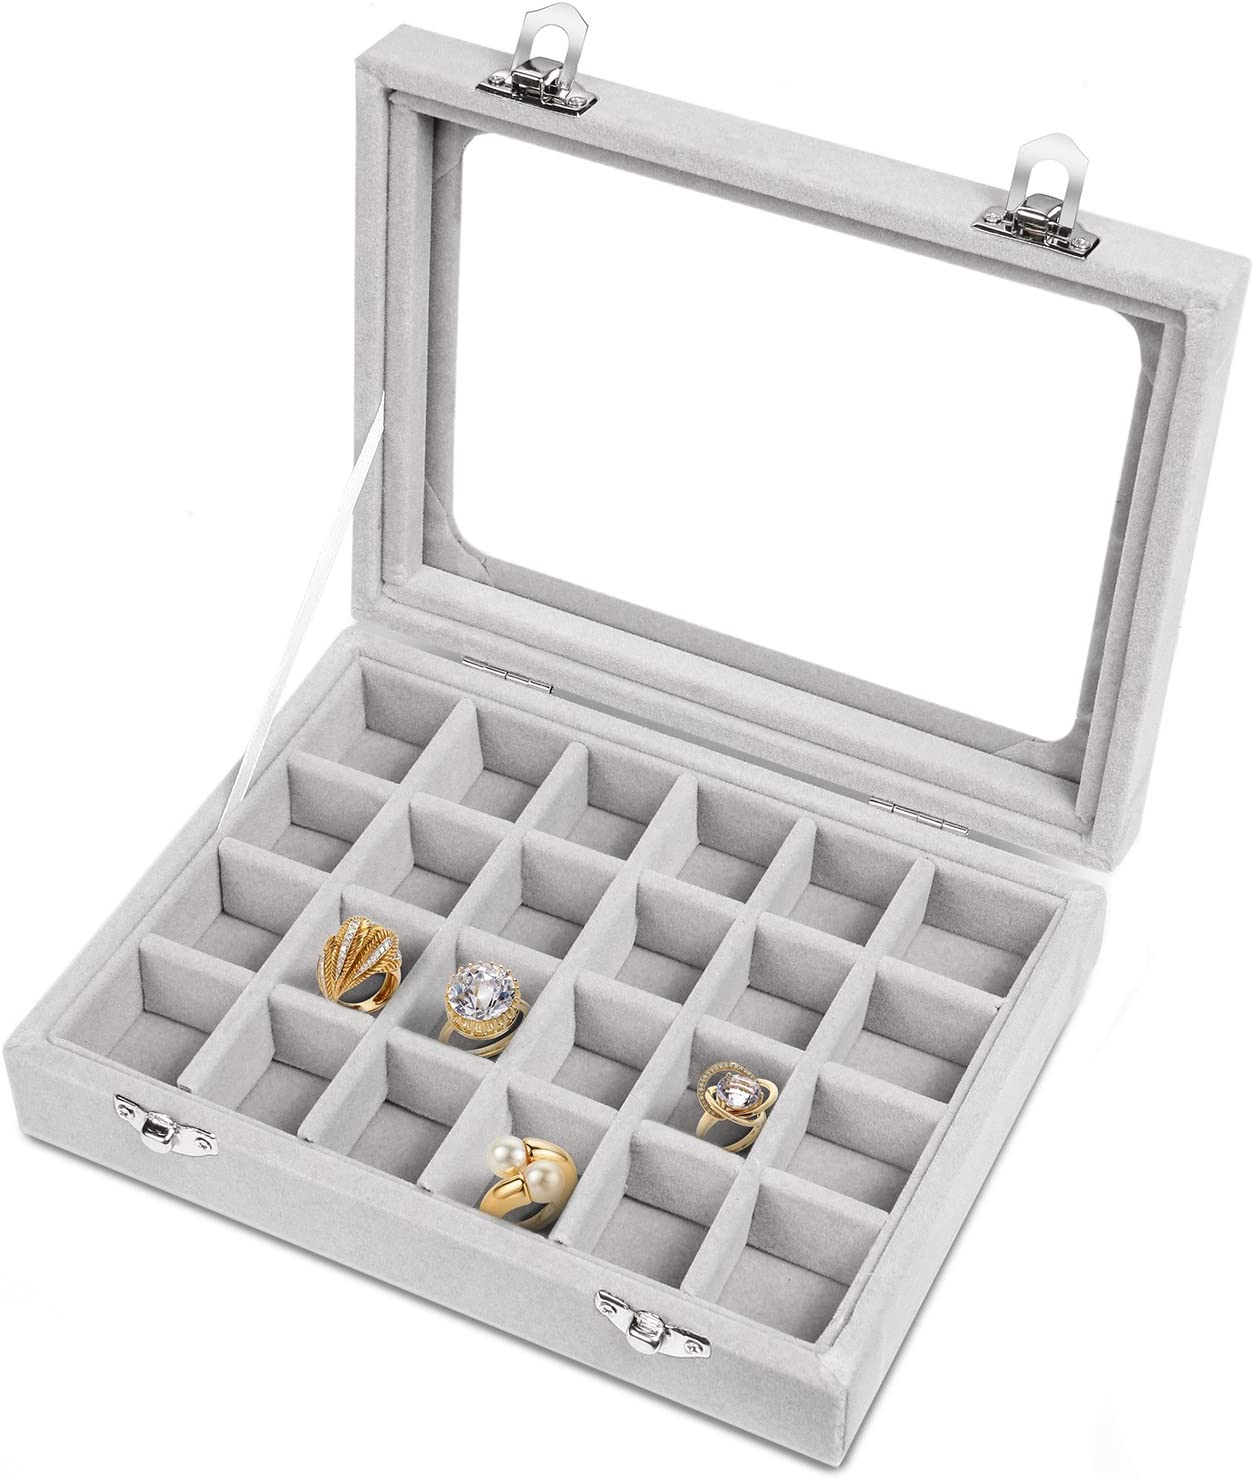 Pasutewel Earring Storage Case 24 Compartments Ring Velvet Display Case Box Earring Ring Organizer Velvet Jewelry Tray Cufflink Storage Showcase with Clear Glass Lid Grey